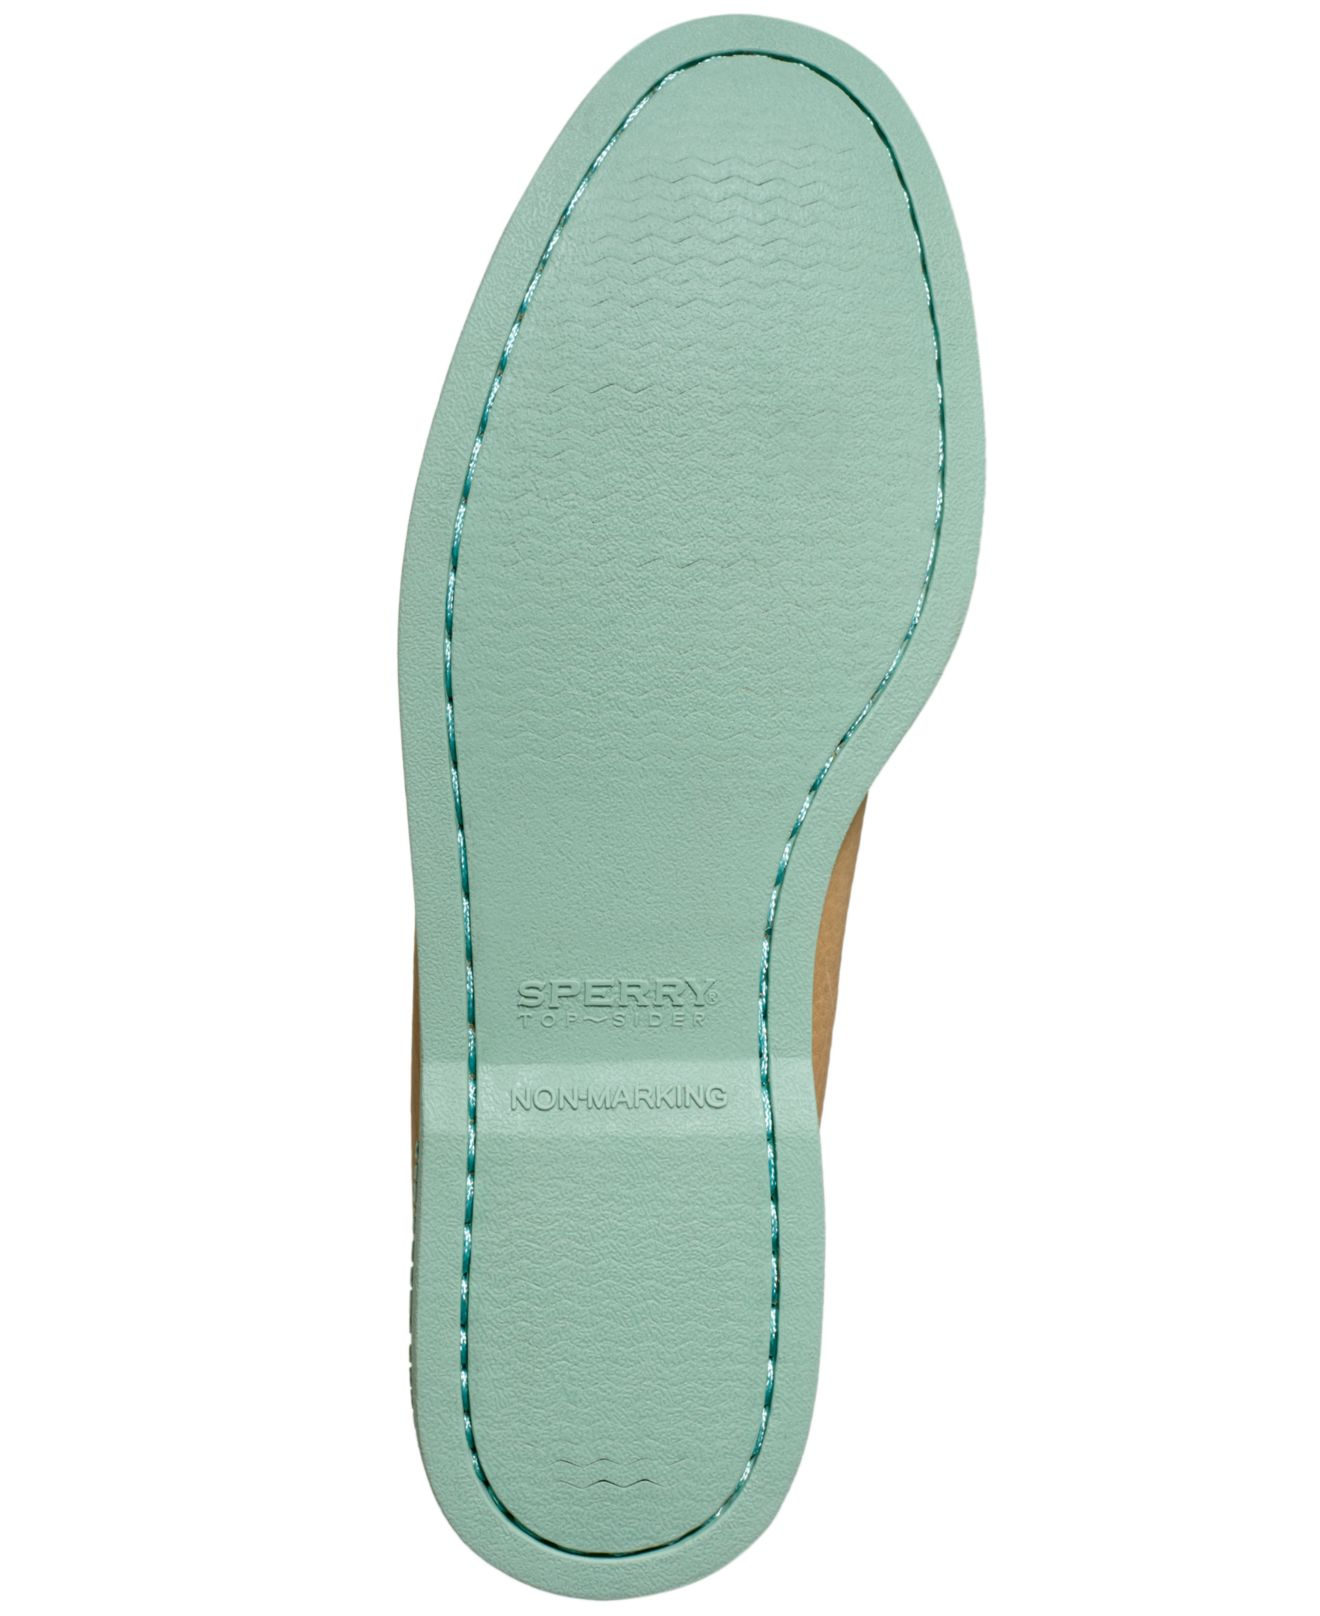 bb3a39302 Lyst - Sperry Top-Sider Authentic Original A O Gore Colored Sole ...